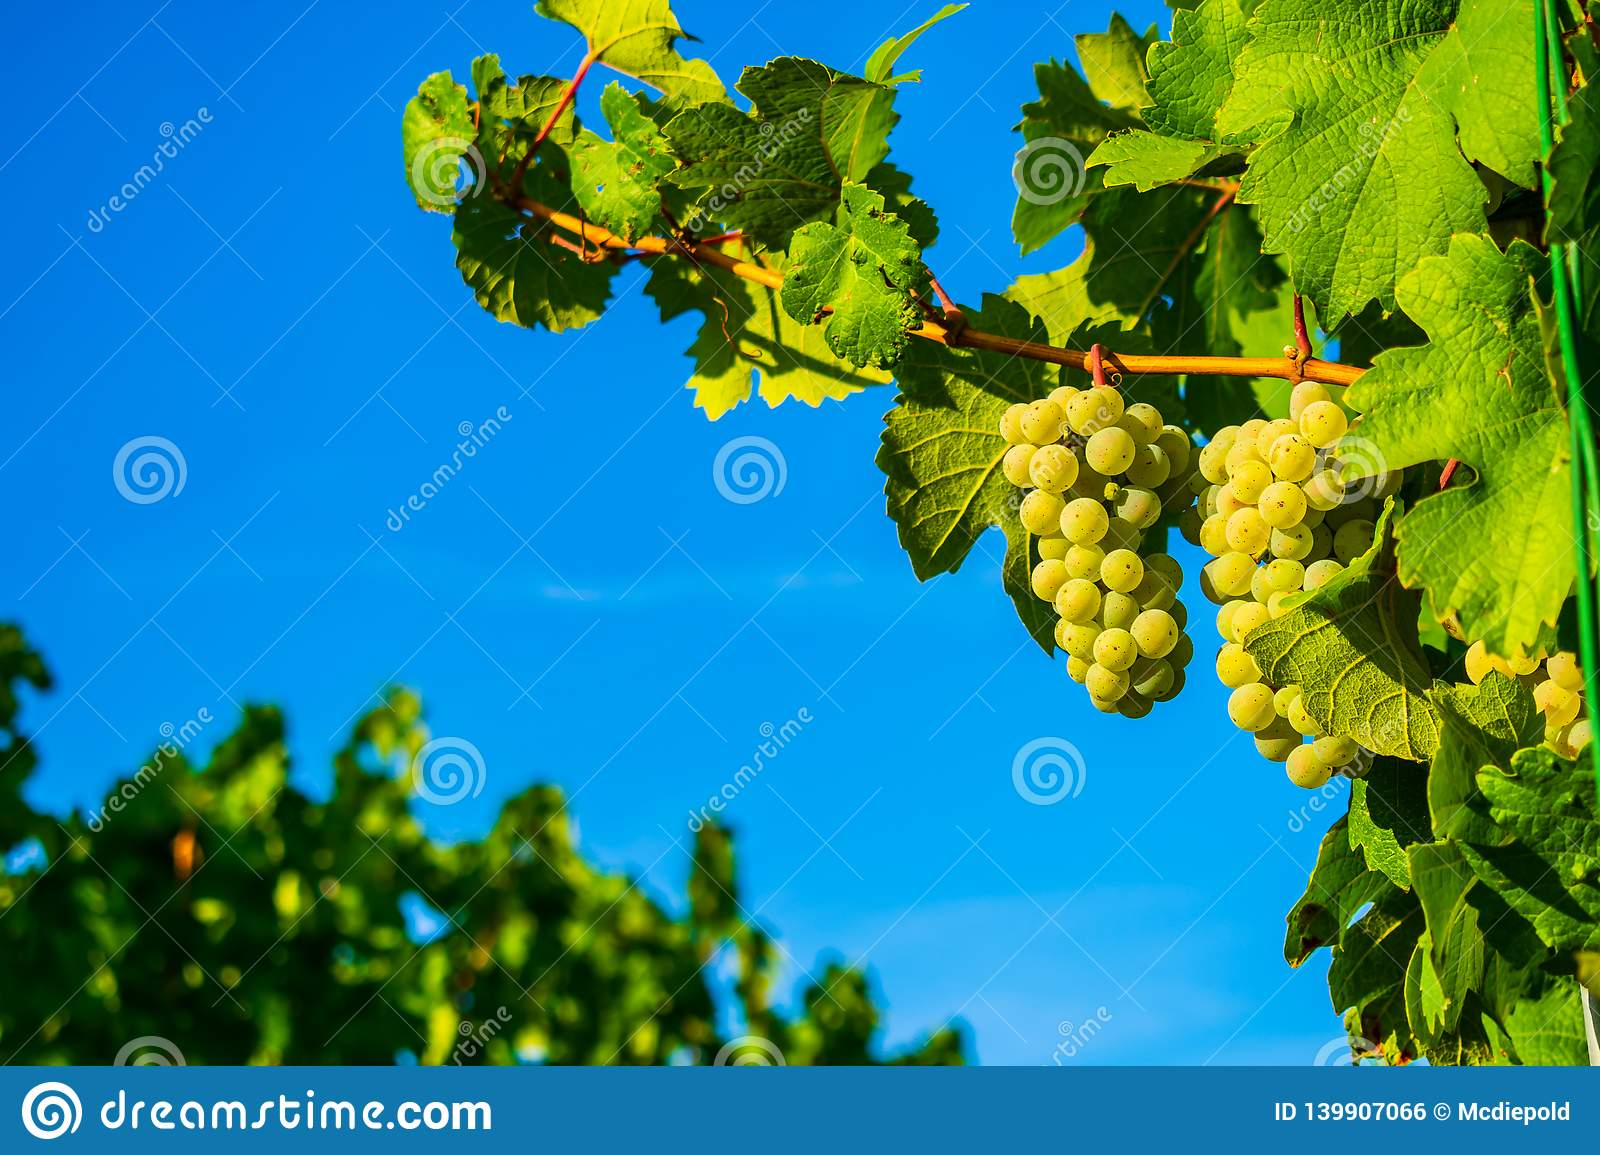 Grapes on the vine in front of blue sky